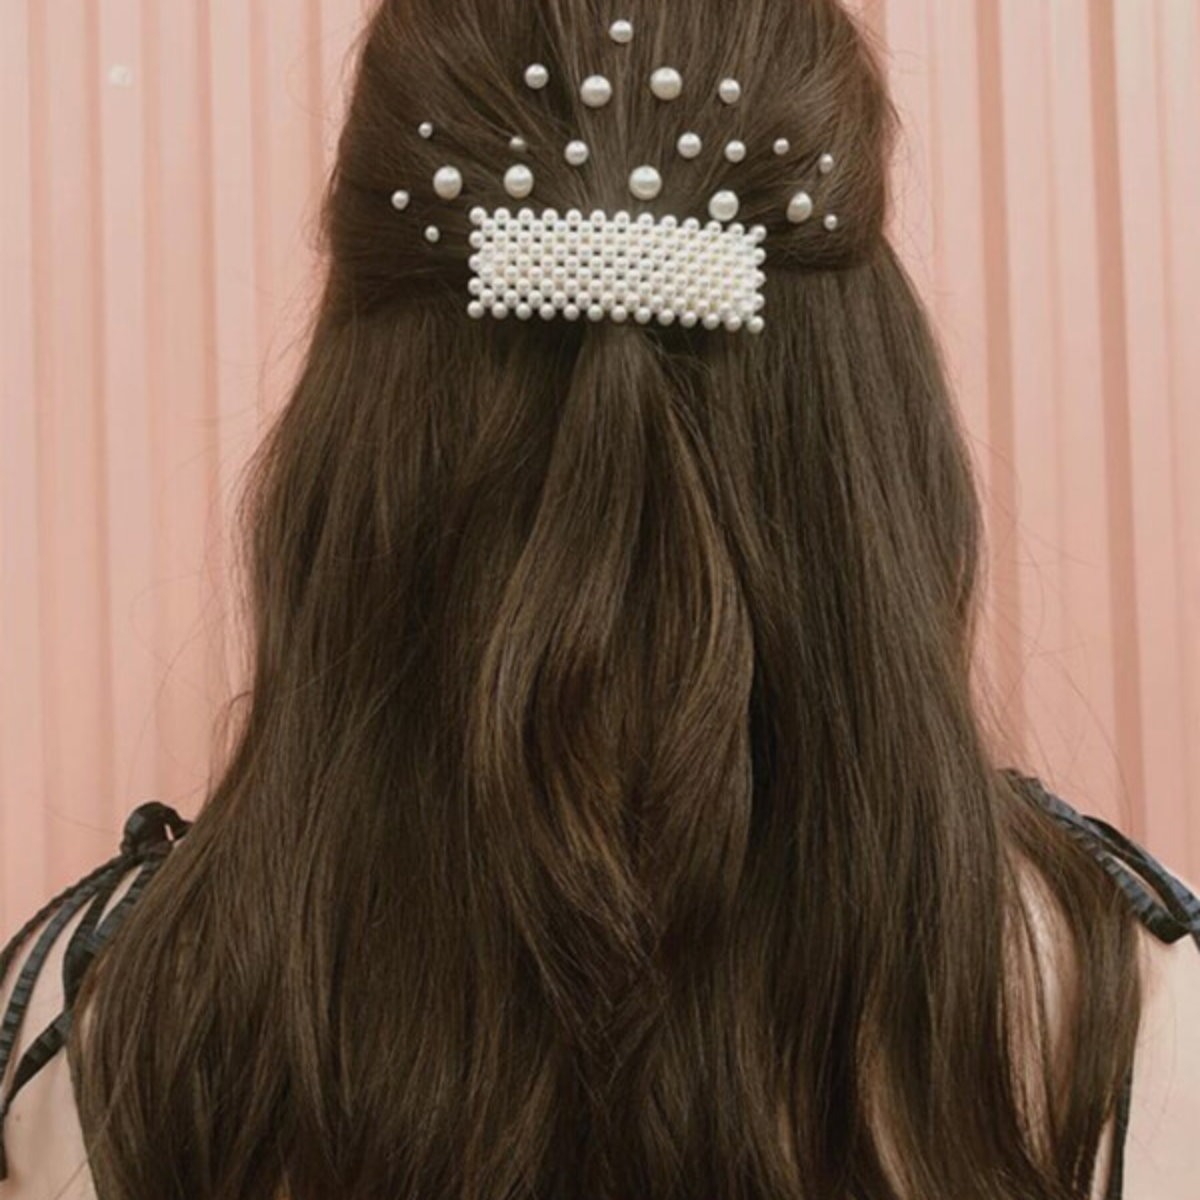 Brunette with pearl barret in hair